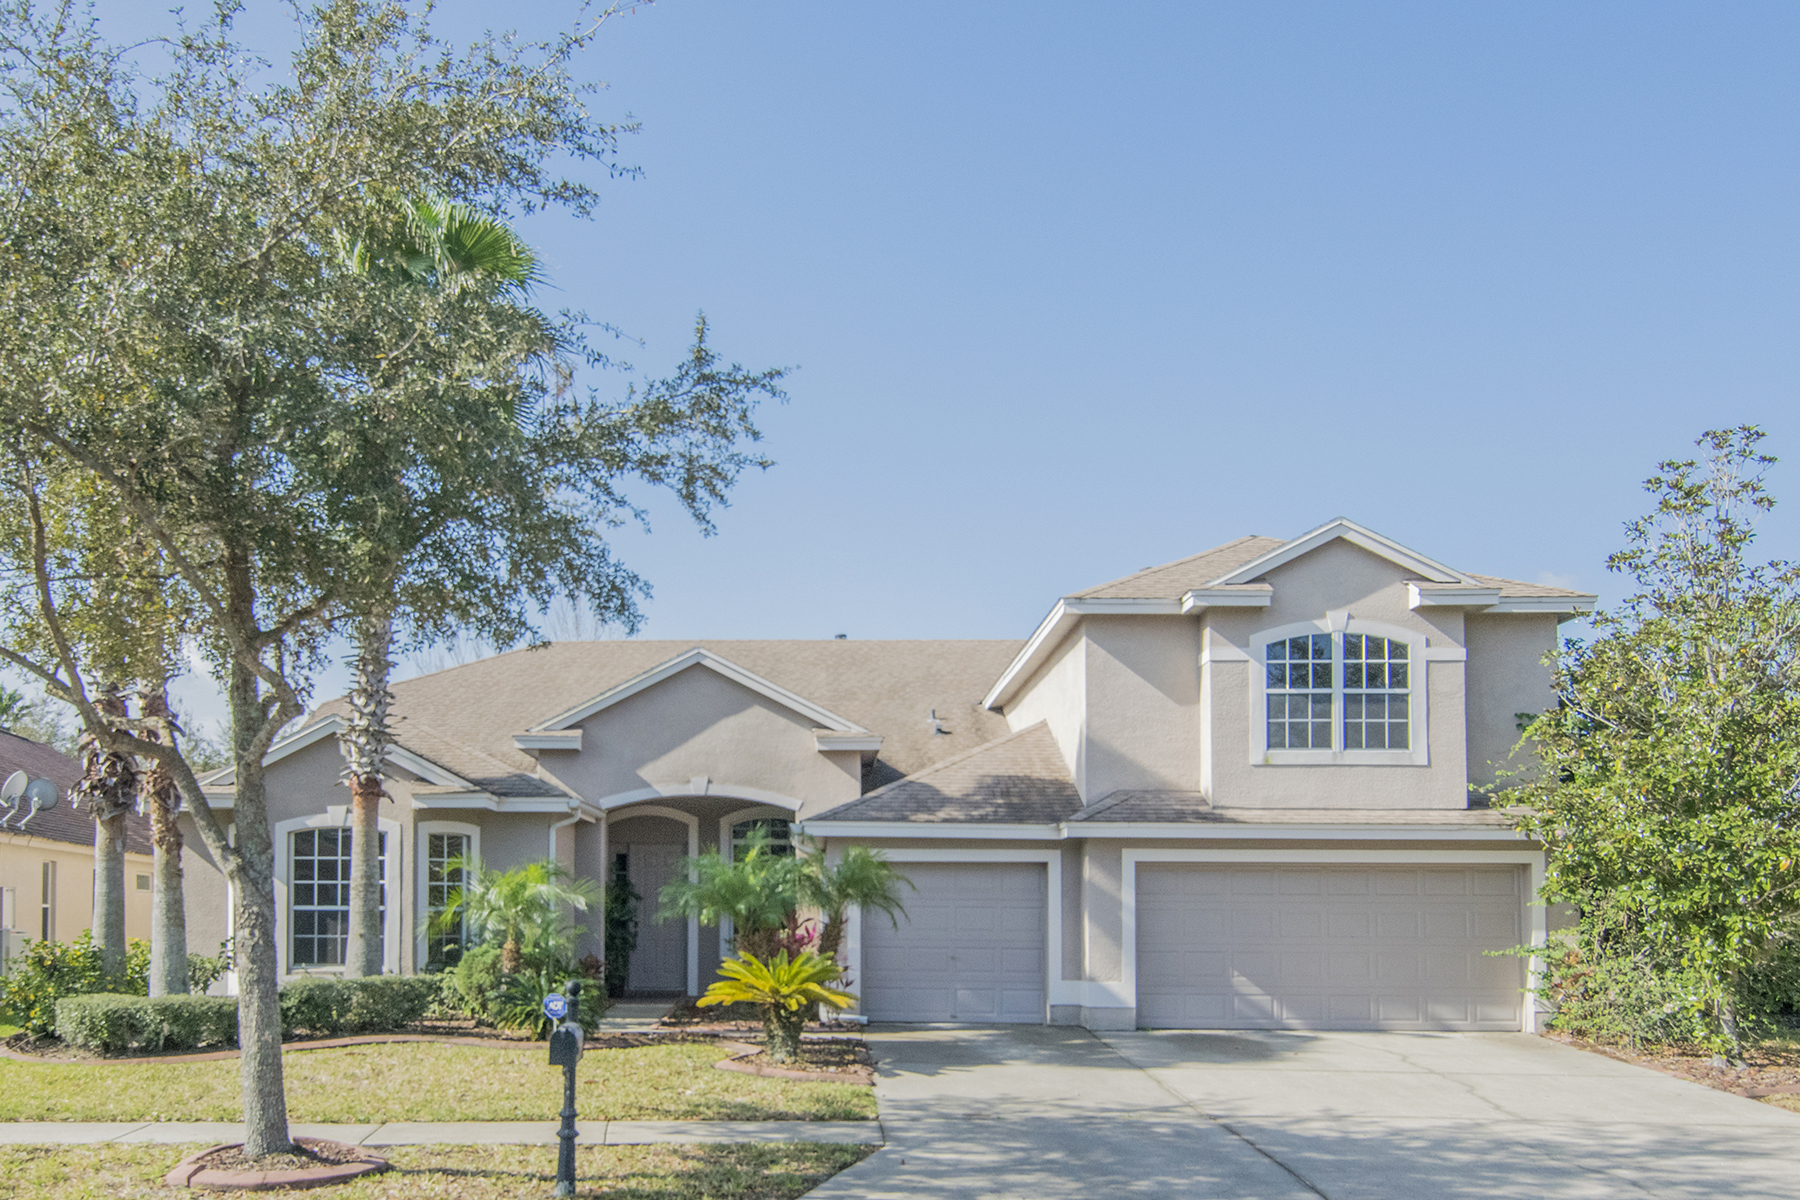 Single Family Home for Sale at TAMPA 19116 Nature Palm Ln, Tampa, Florida 33647 United States